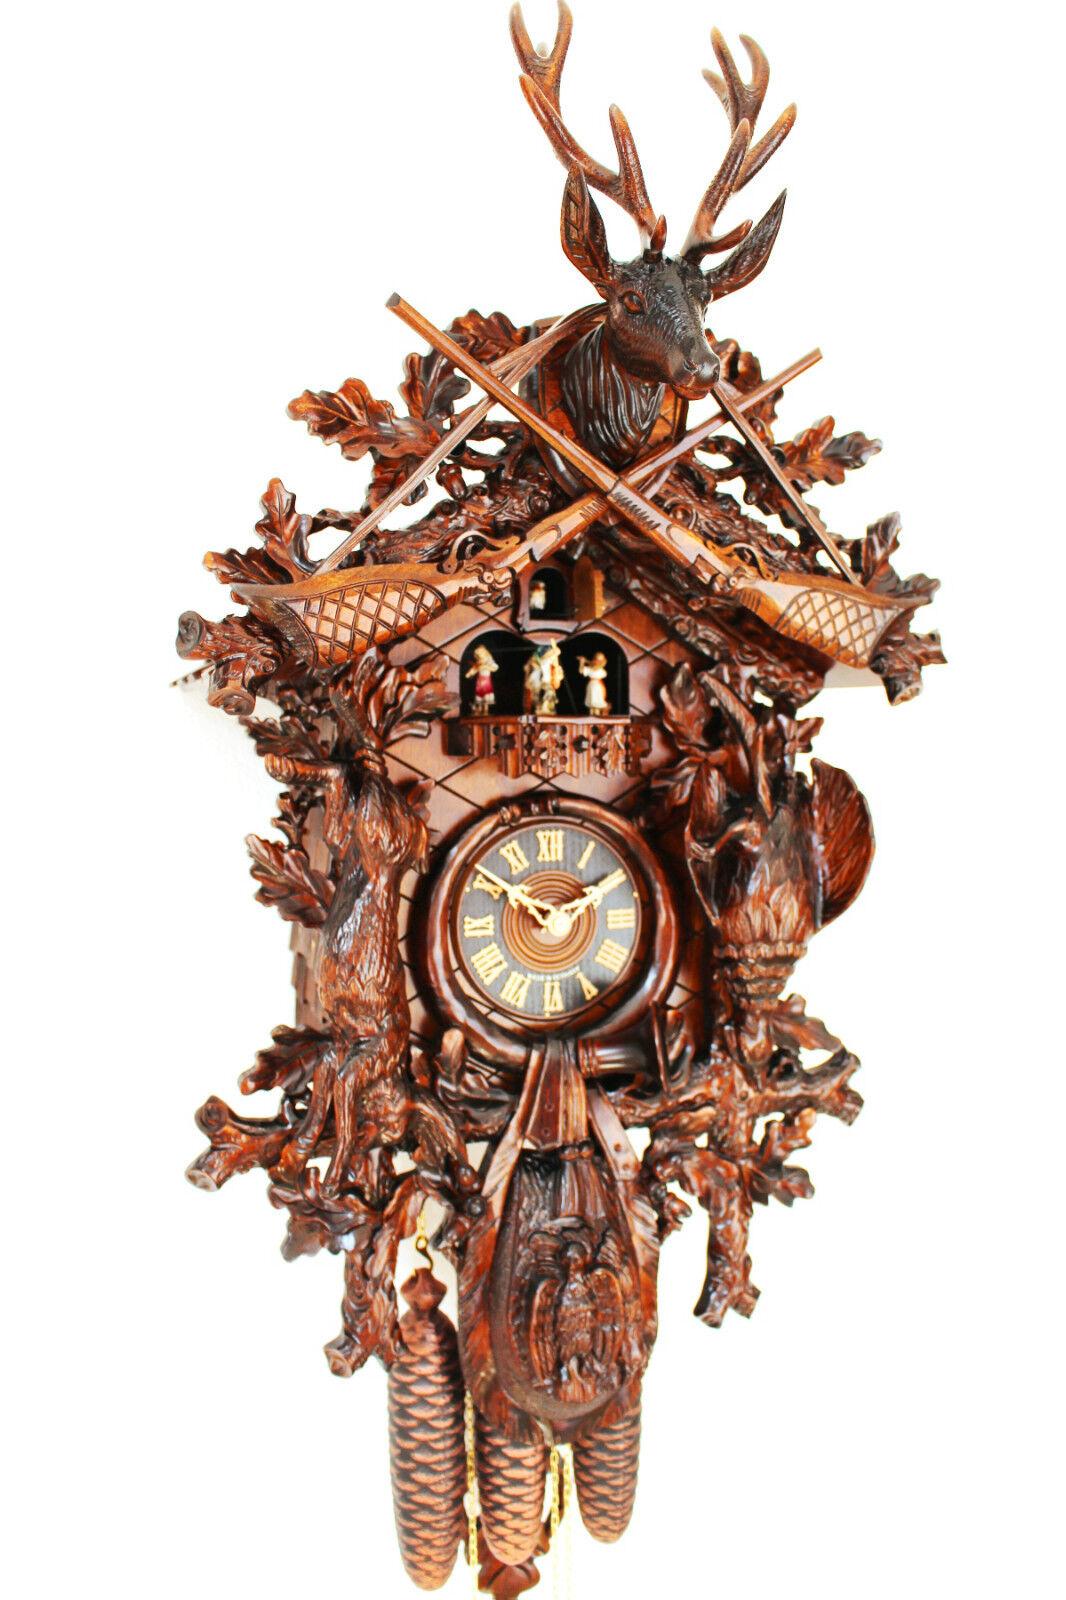 Cuckoo clock black forest 8 day music german wood hunter How to make a cuckoo clock